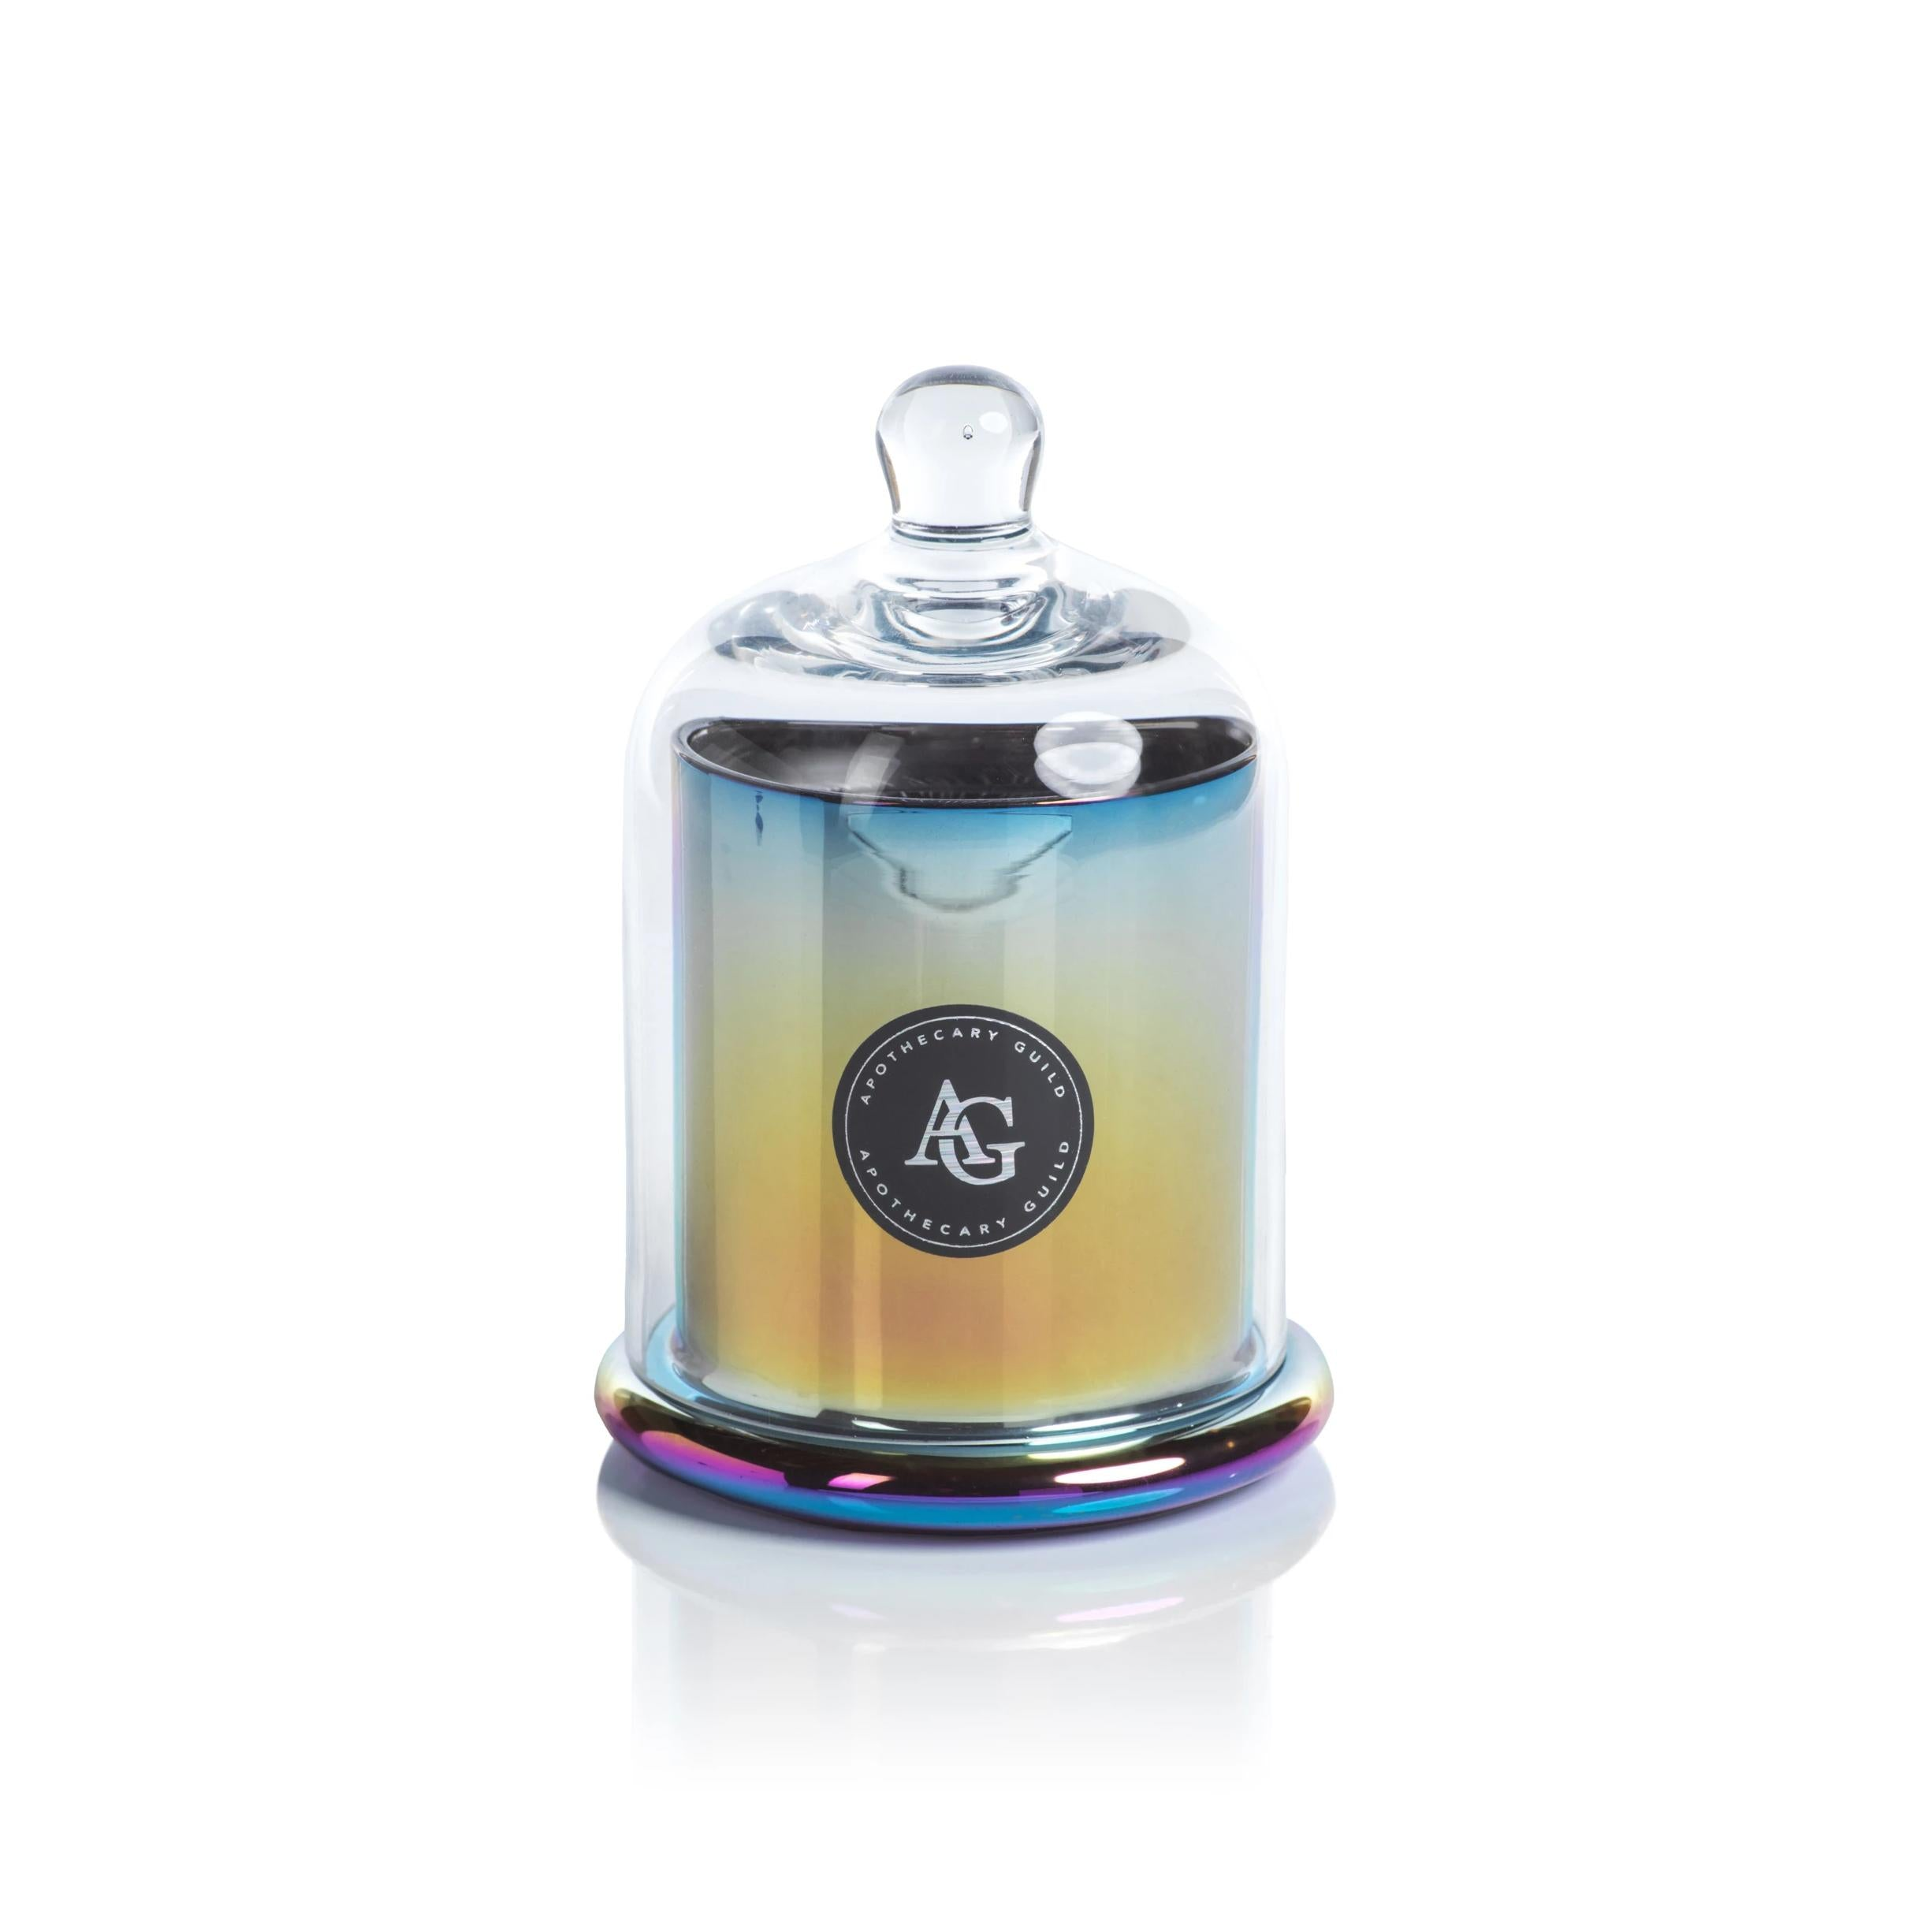 RAINBOW METALLIC DOME CANDLE